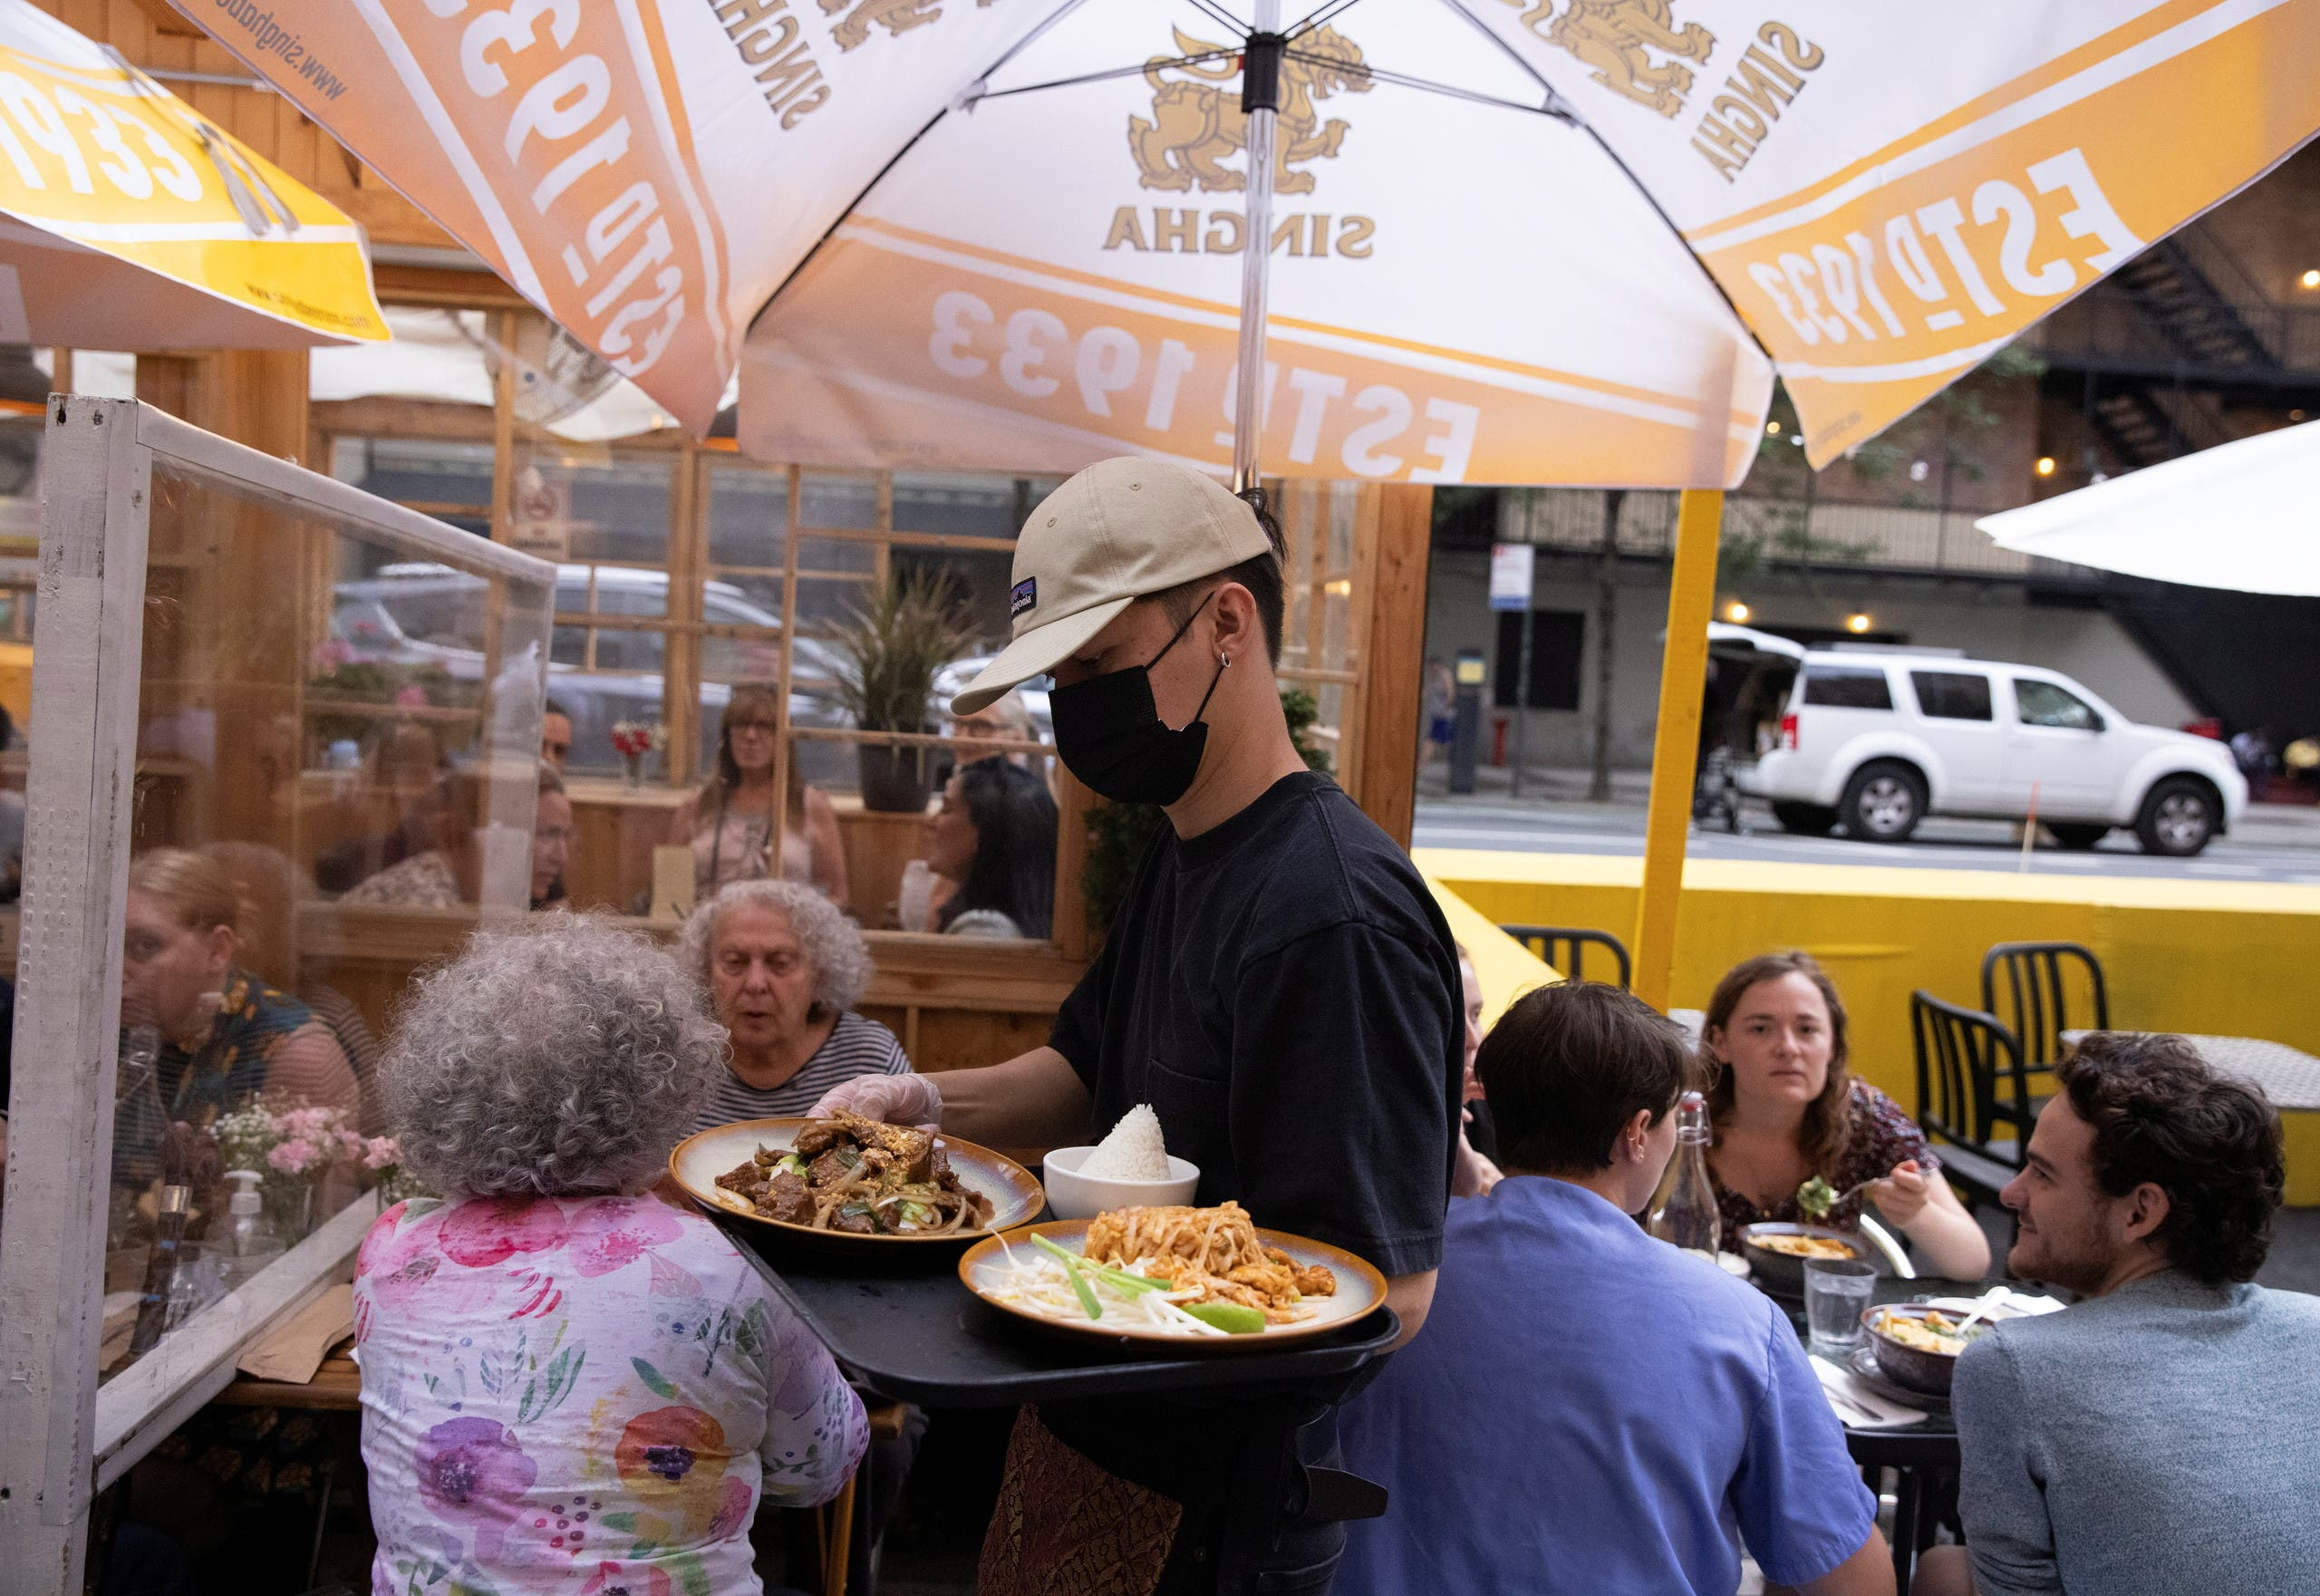 Food is served to guests at a restaurant in Manhattan, after New York City Mayor Bill de Blasio announced that proof of coronavirus disease (COVID-19) vaccination will be required for customers and staff at restaurants, gyms and other indoor businesses, in New York City, U.S., August 3, 2021. (Reuters)